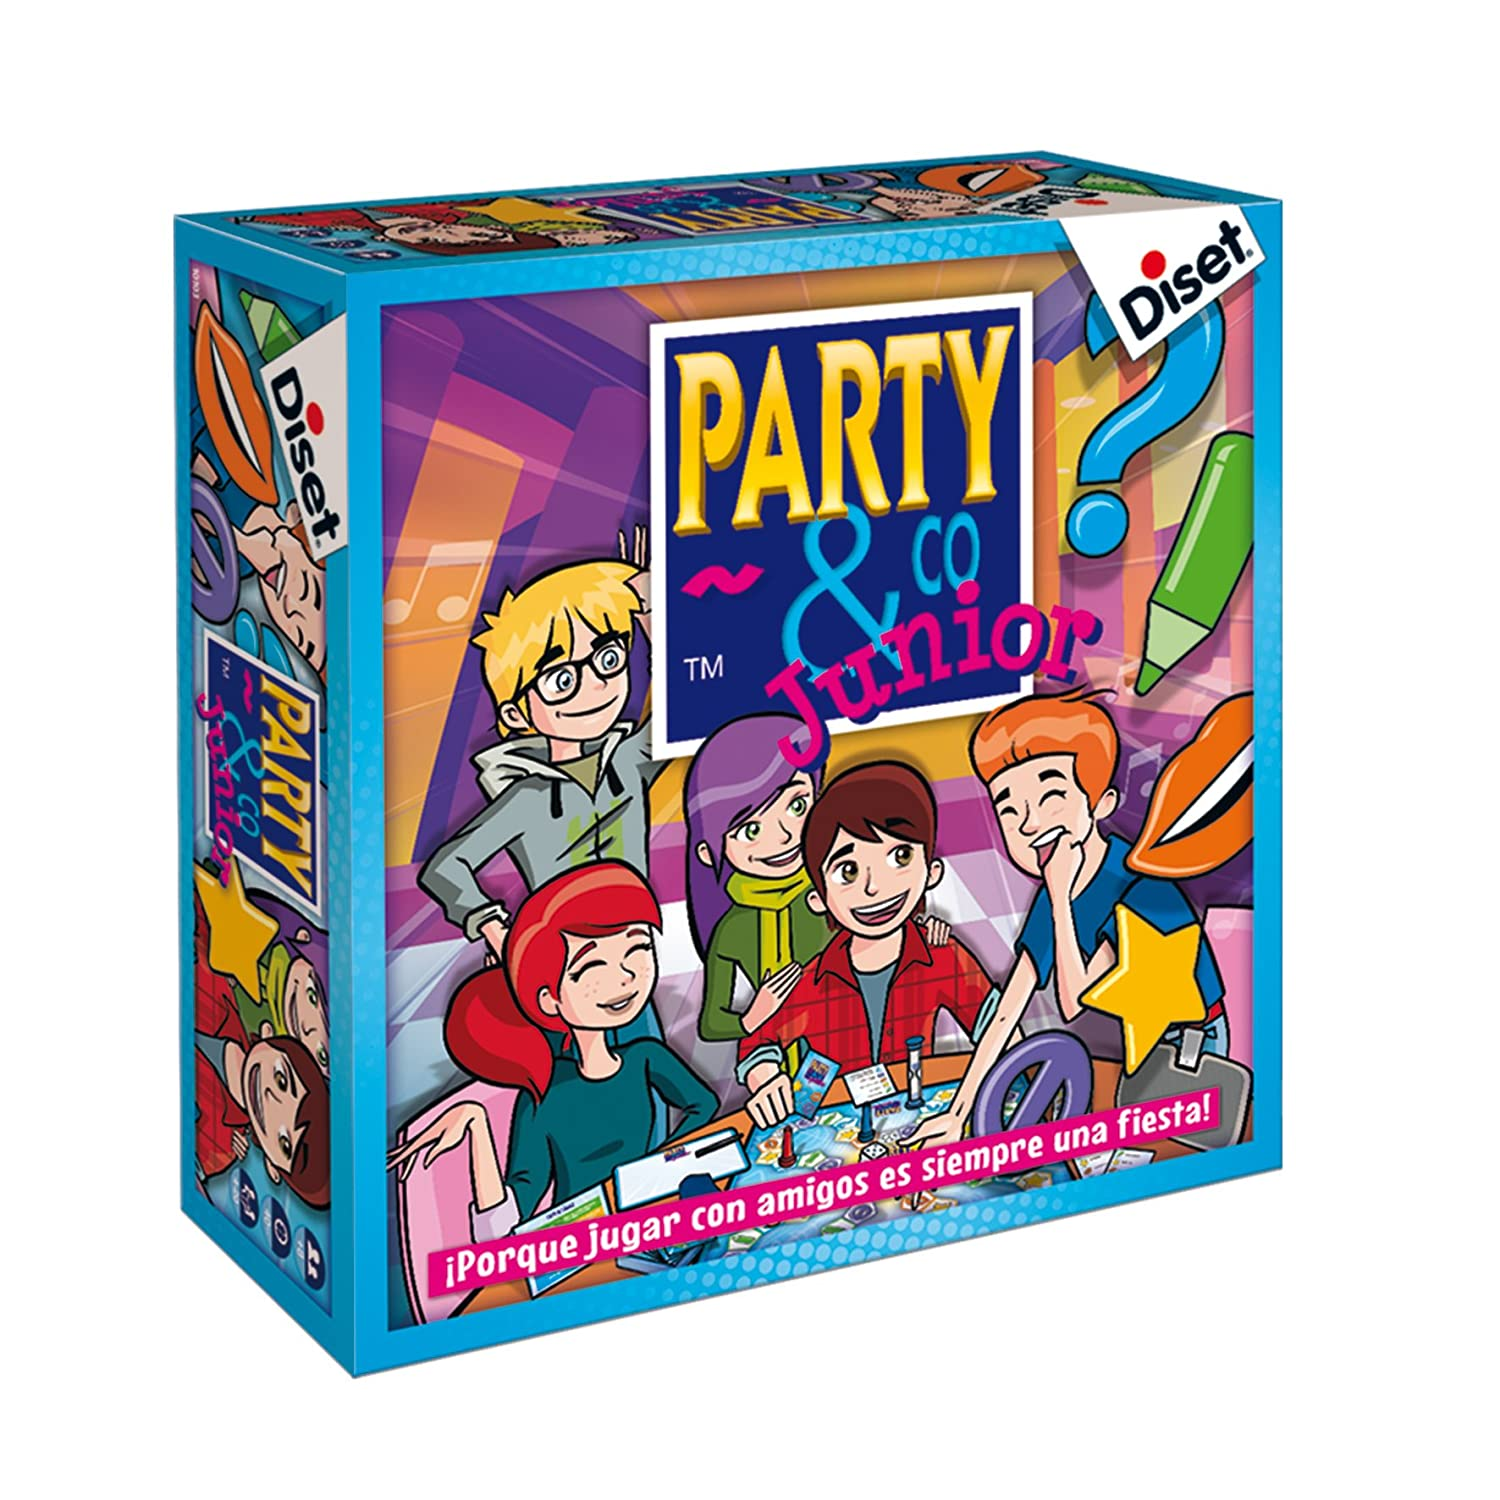 Party&Co Junior https://amzn.to/2Pt1JLU